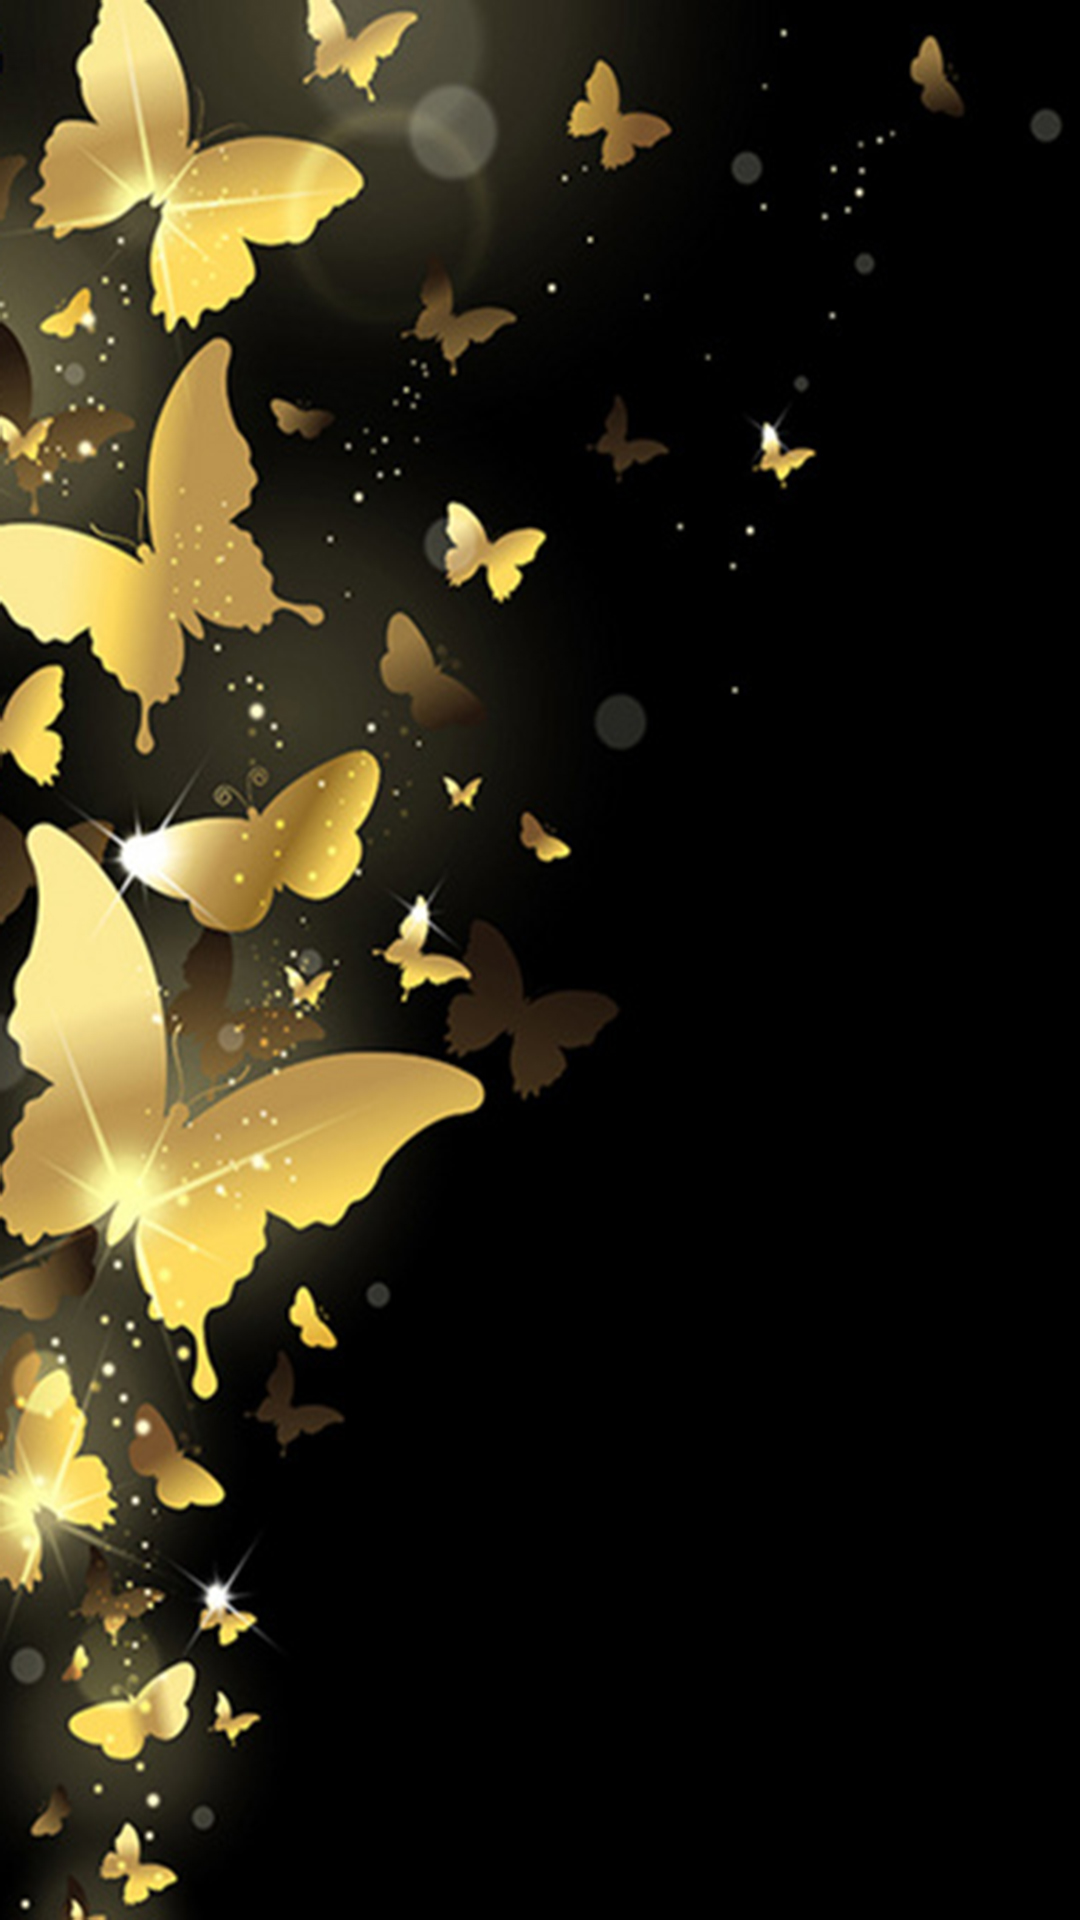 Golden Shine Butterfly H5 Background Material Gold Shine